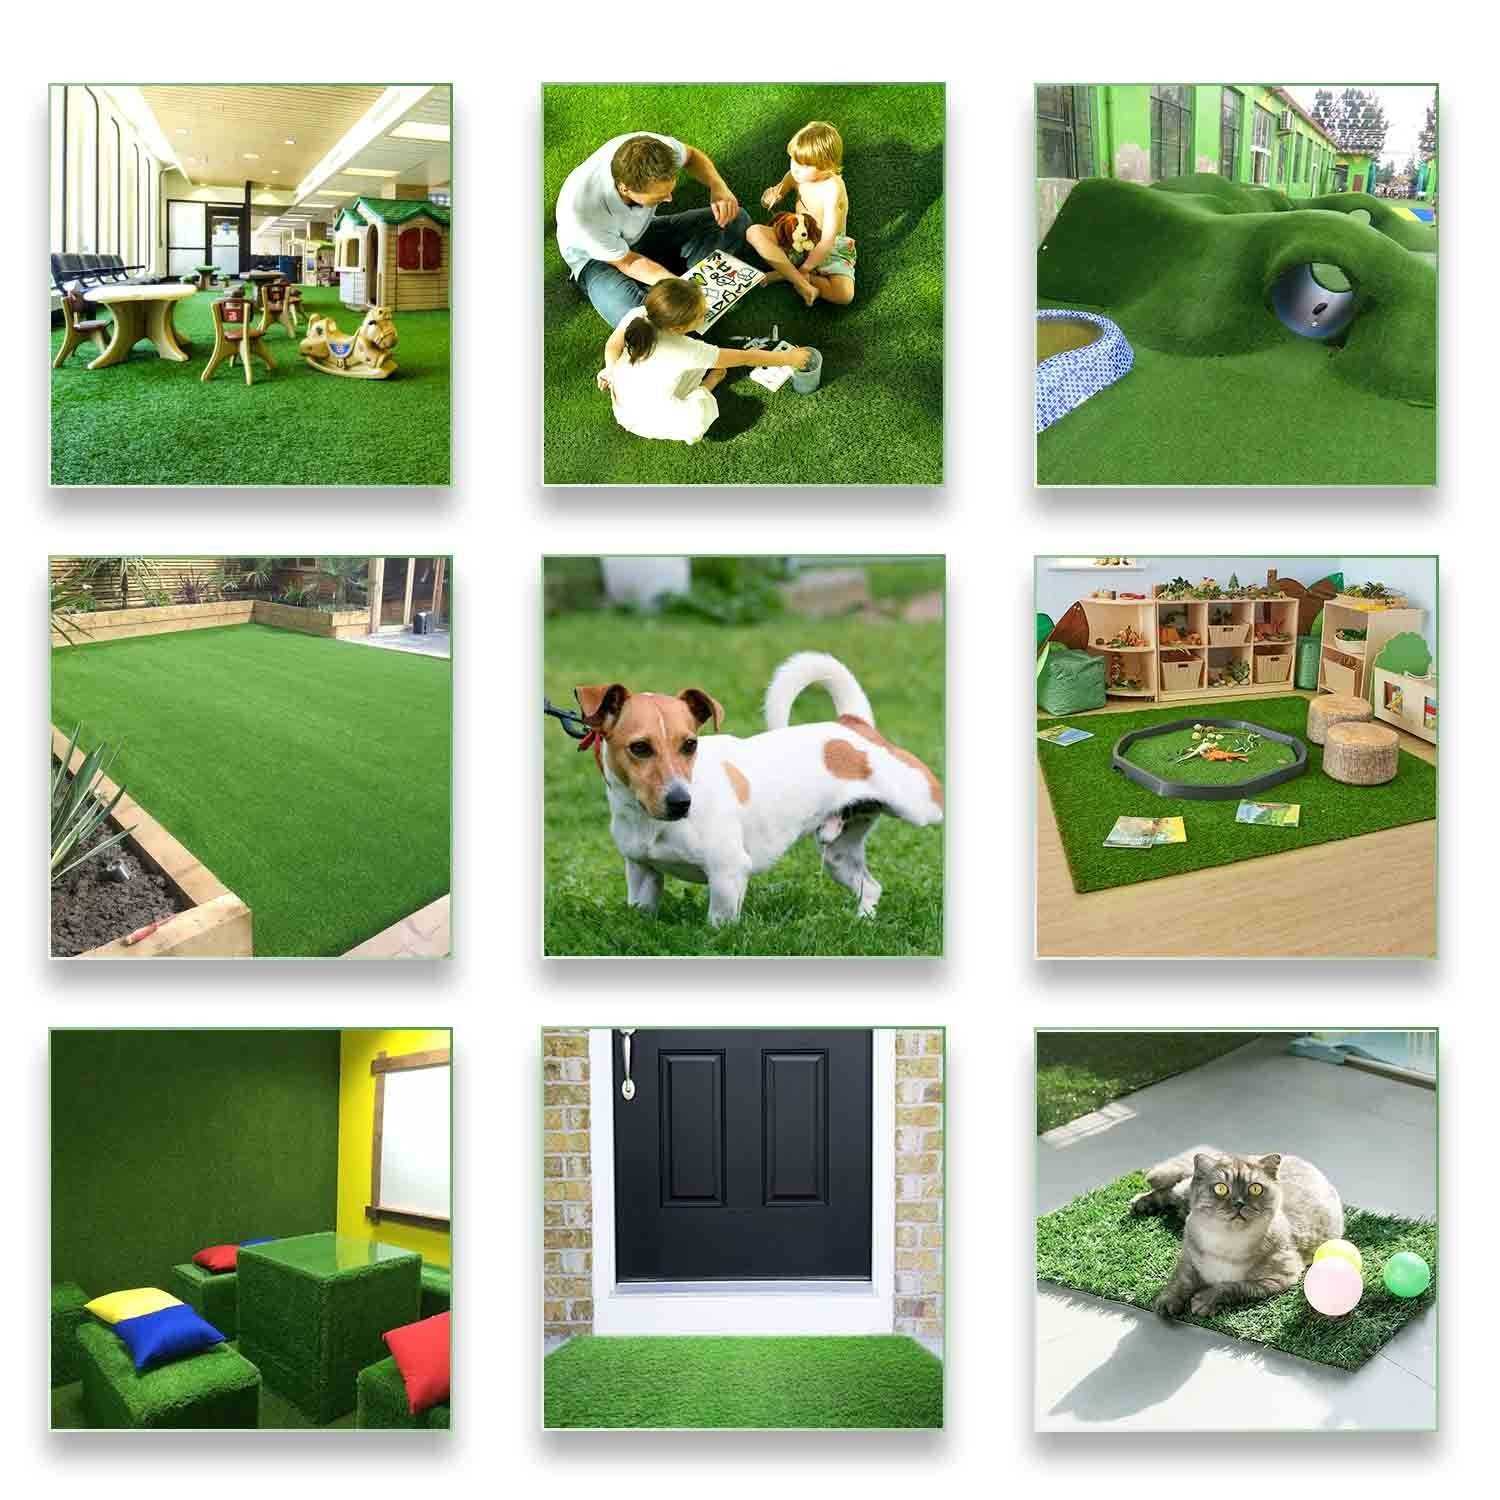 LITA Premium Artificial Grass 40 in x 80 in (22.2 Square FT) Realistic Fake Grass Deluxe Turf Synthetic Turf Thick Lawn Pet Turf -Perfect for indoor/outdoor Landscape - Customized